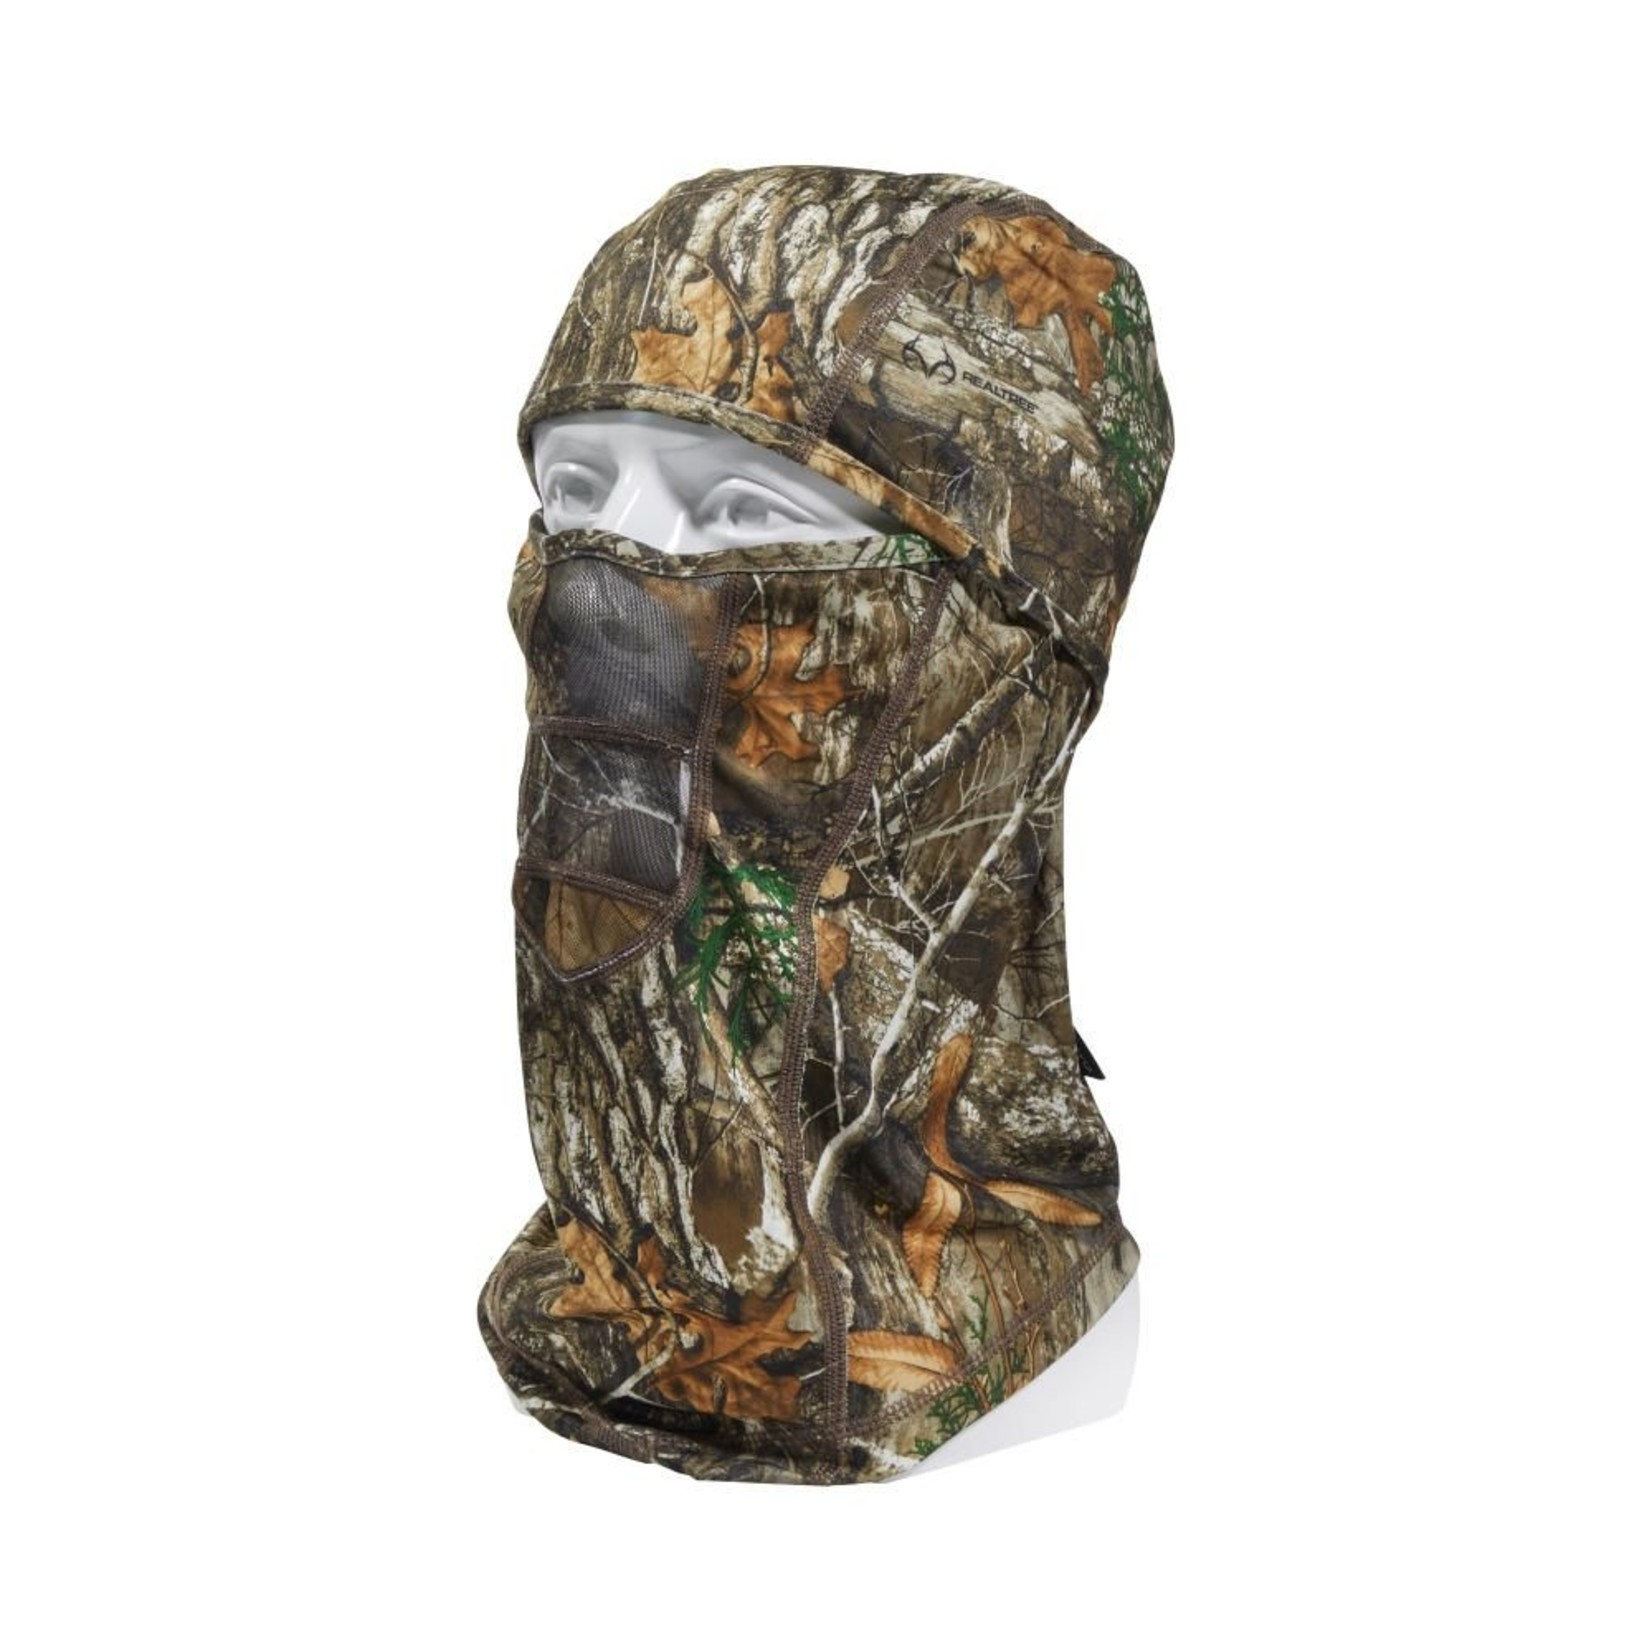 Allen Balaclava Face Mask With Mesh, Real Tree Edge